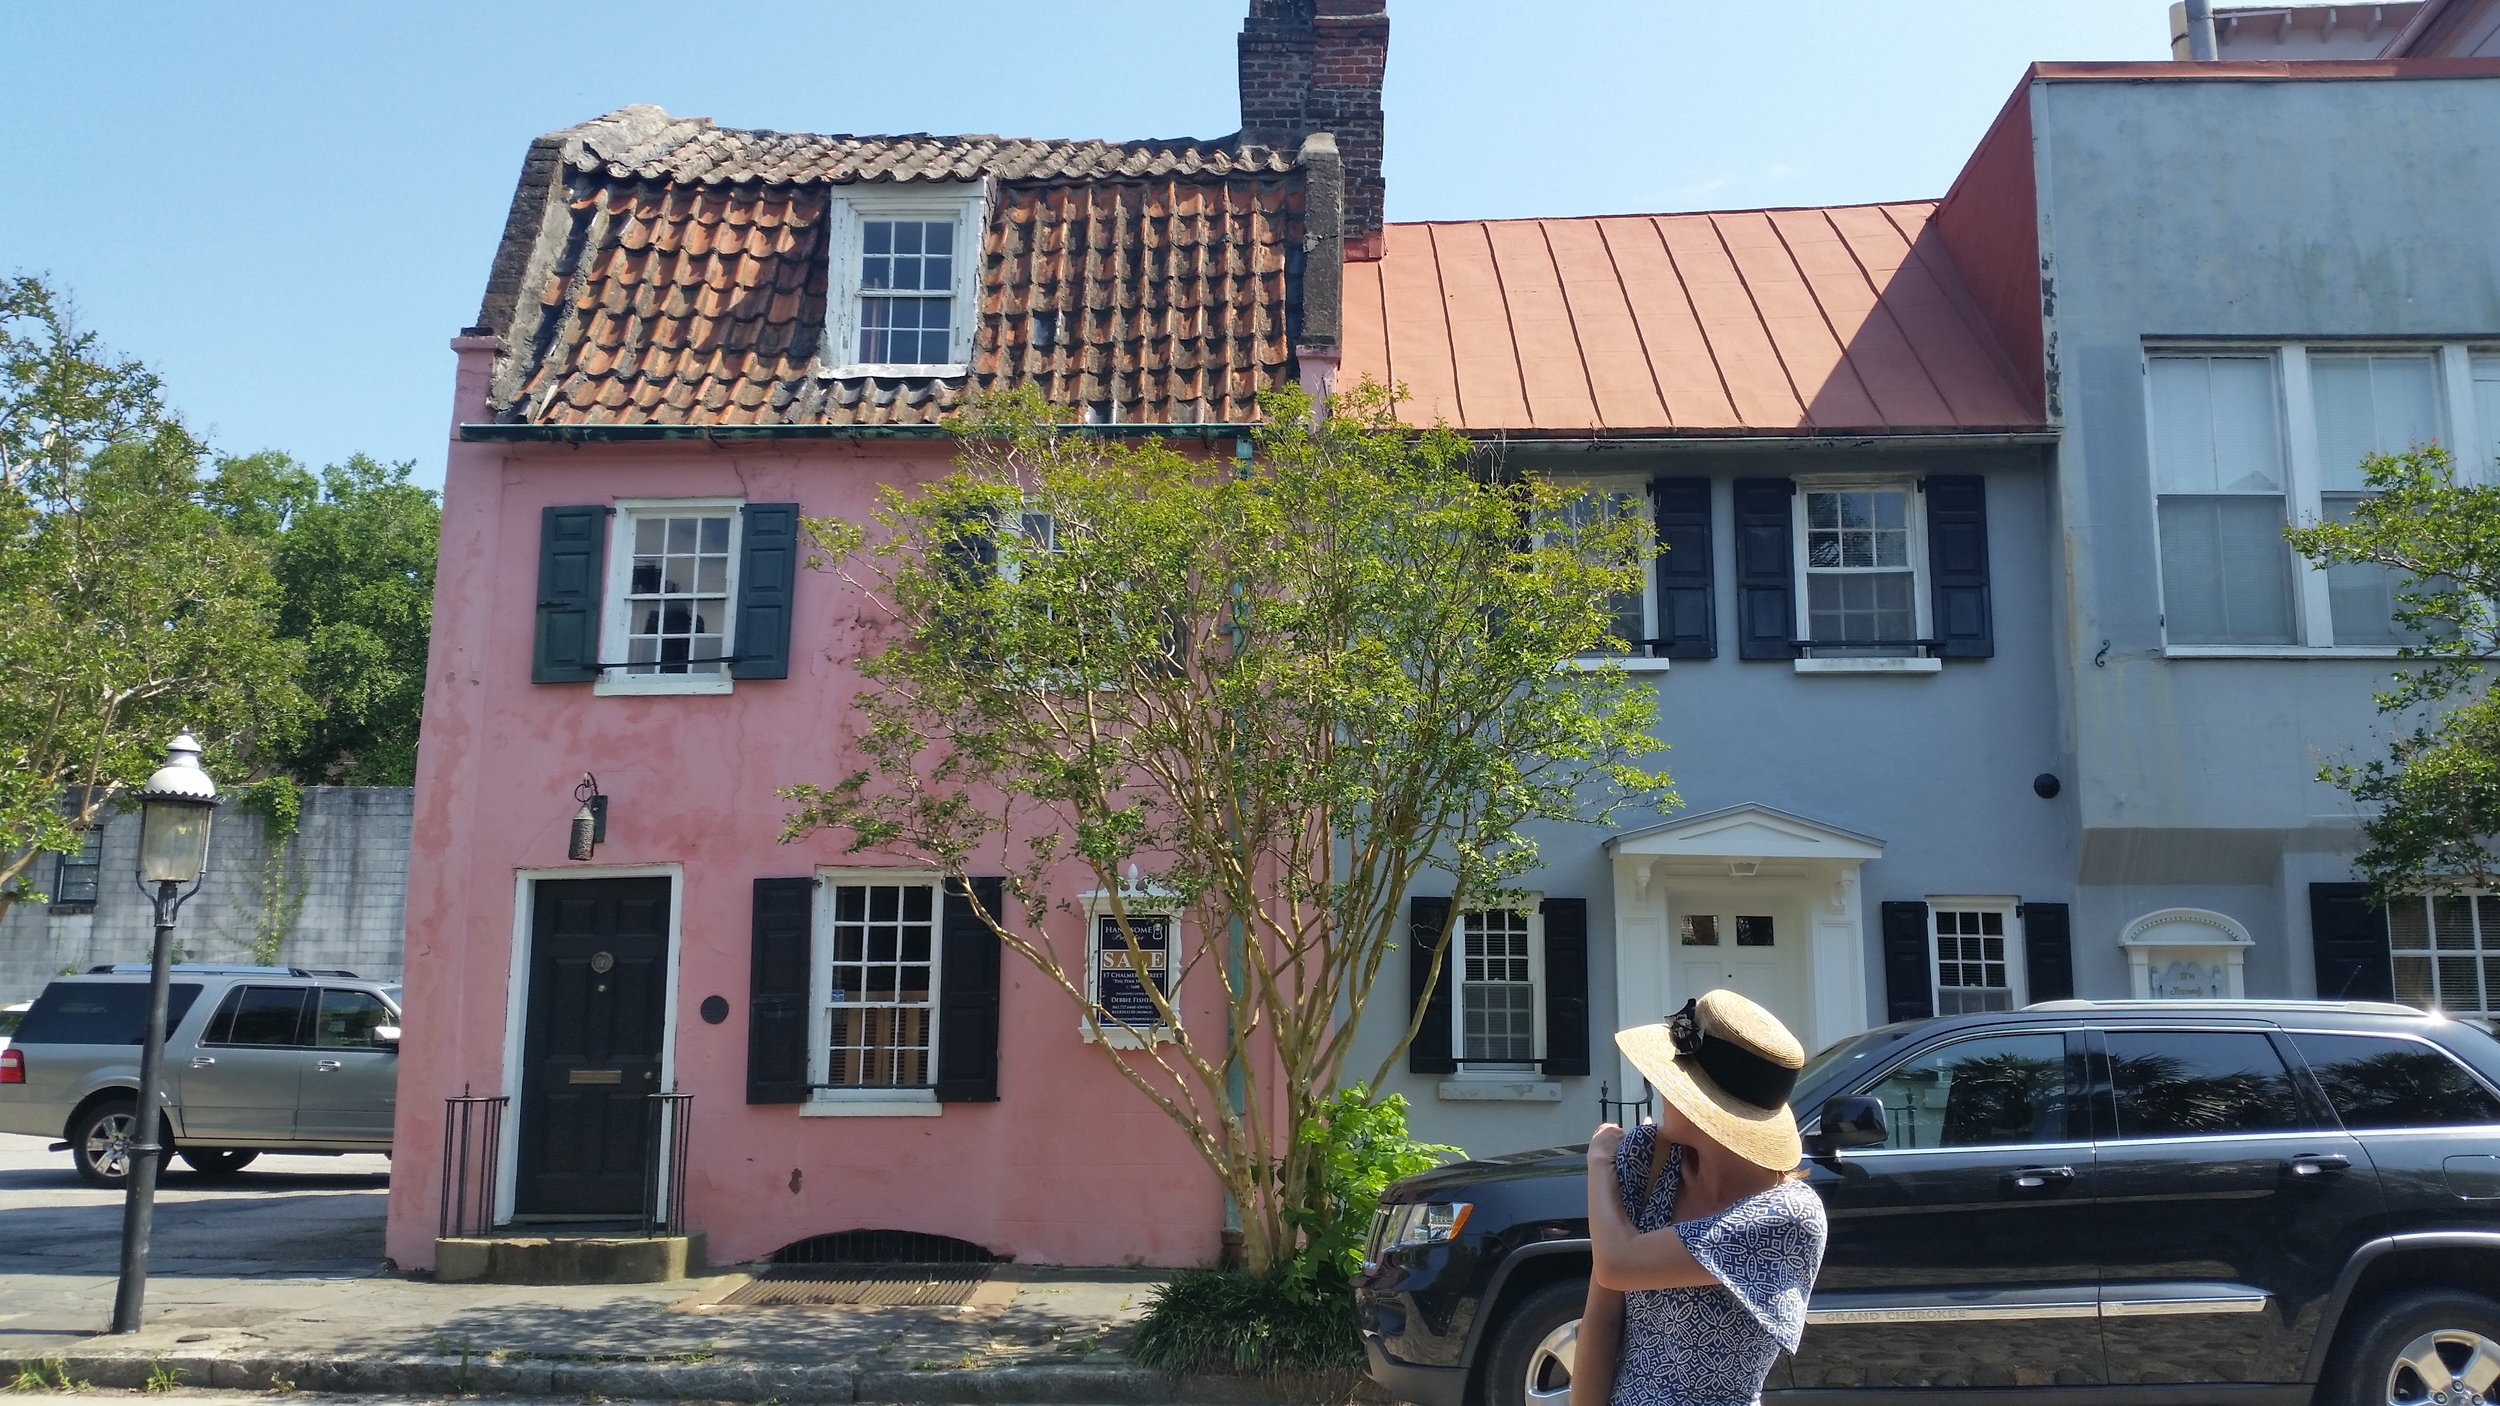 Old buildings (oldest building in Charleston is the Pink House) and interesting tour guides (woman in the hat) both provide great characters for various future paintings.